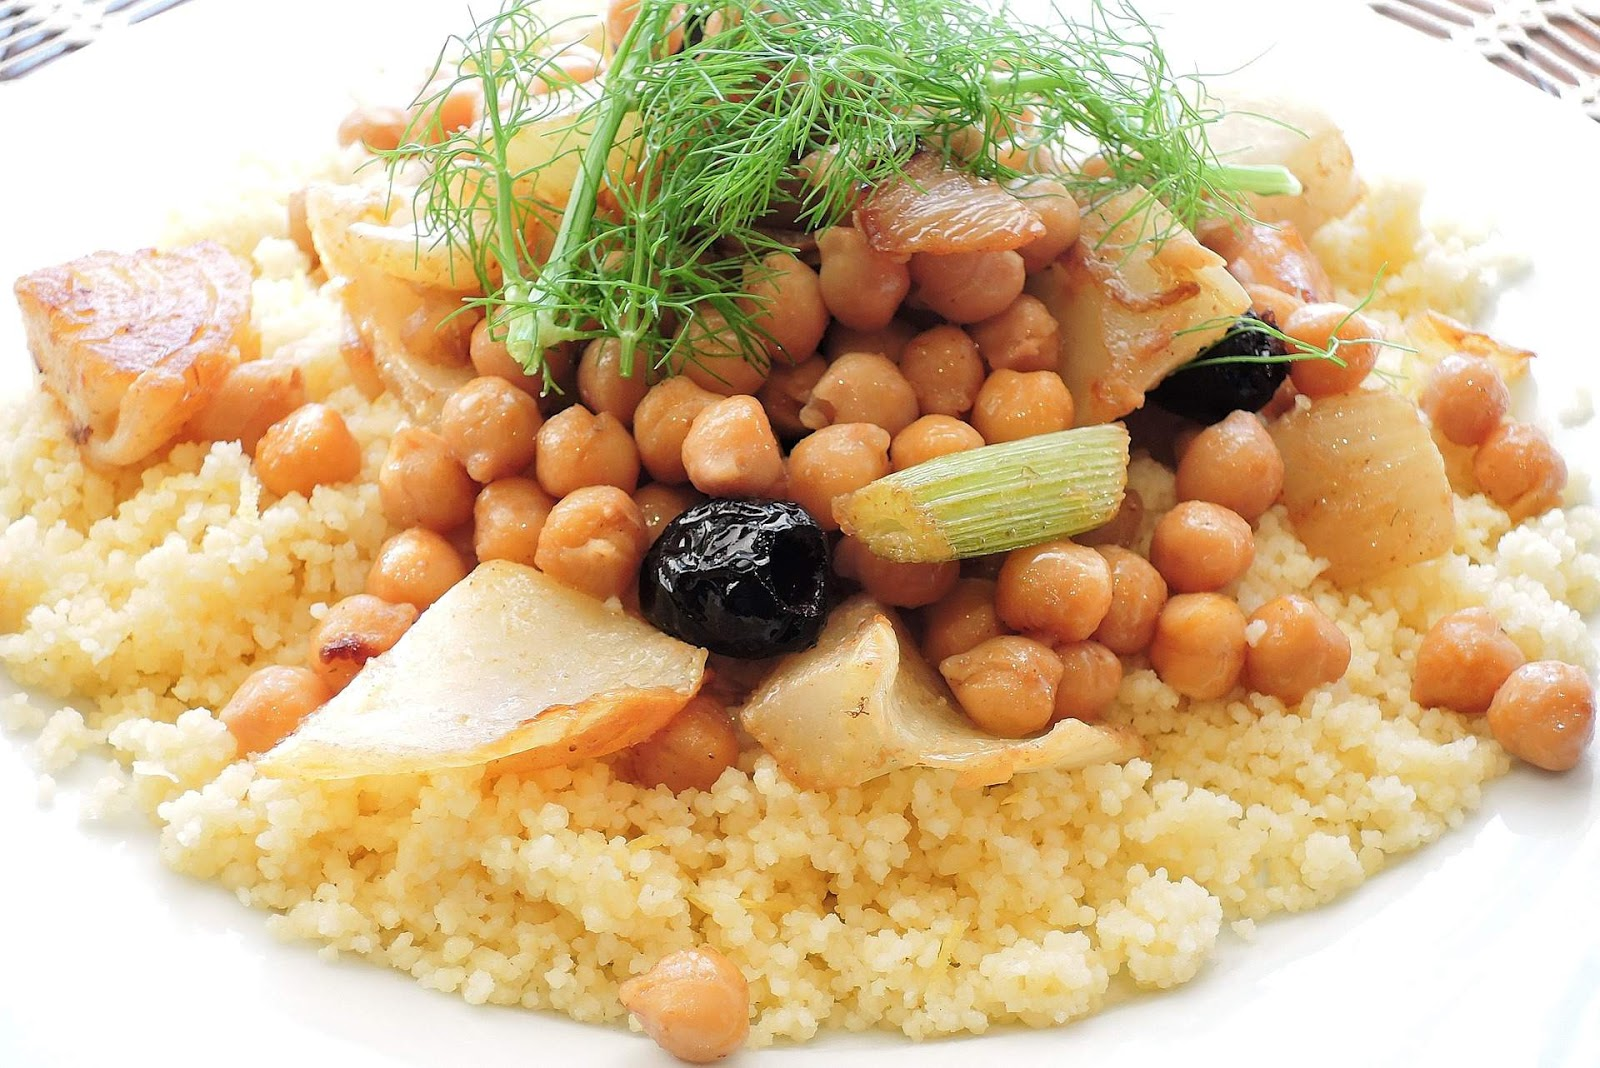 Easy recipe to make couscous cook it easy donal skehan good mood food ingredients serves 4 225g couscous 100g feta cheese crumbled 425ml pint vegetable stock 1 red onion finely chopped forumfinder Gallery